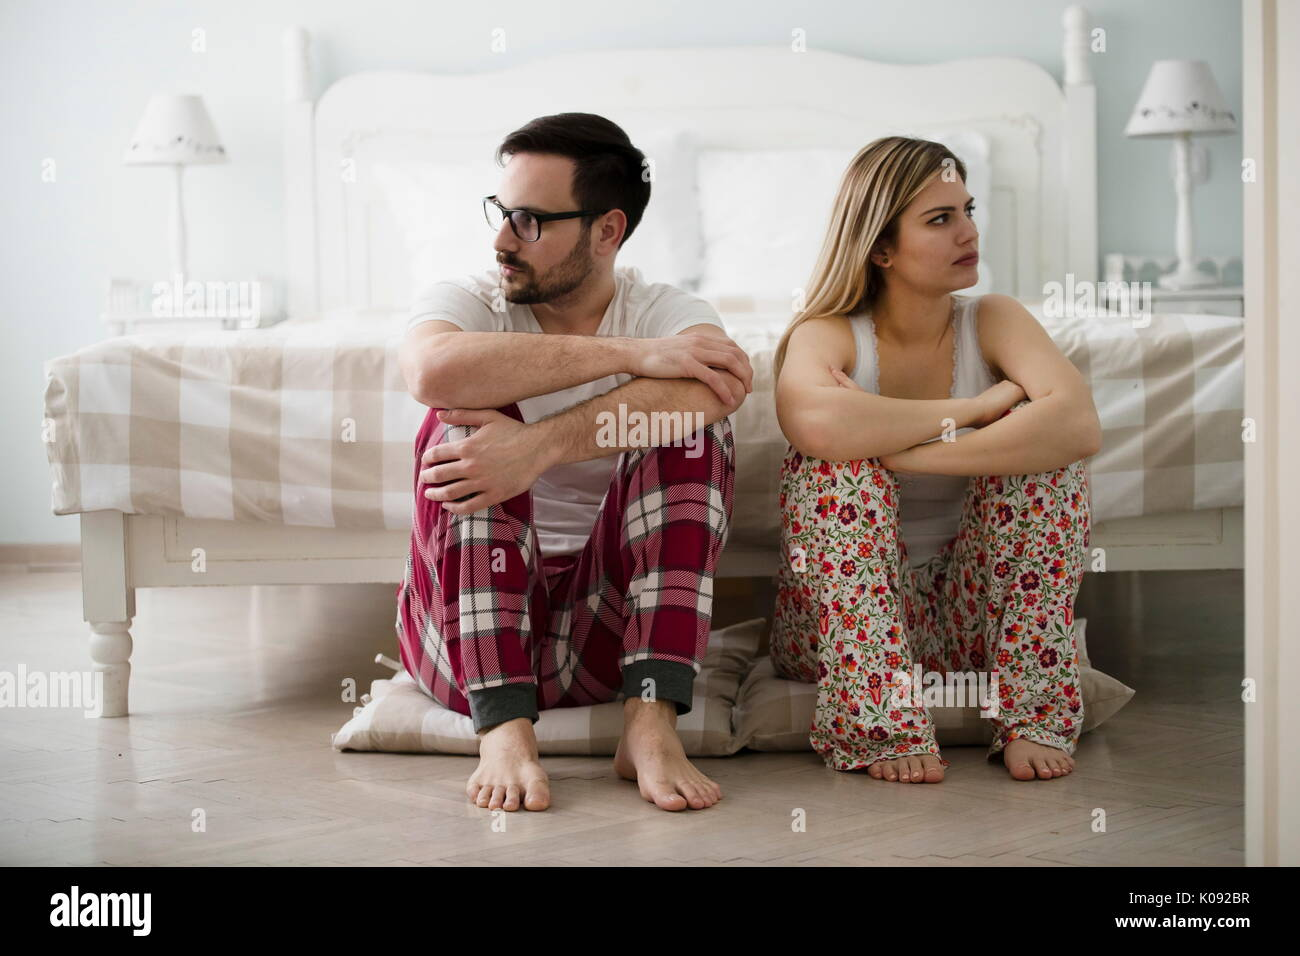 Unhappy young couple having difficulties in relationship - Stock Image